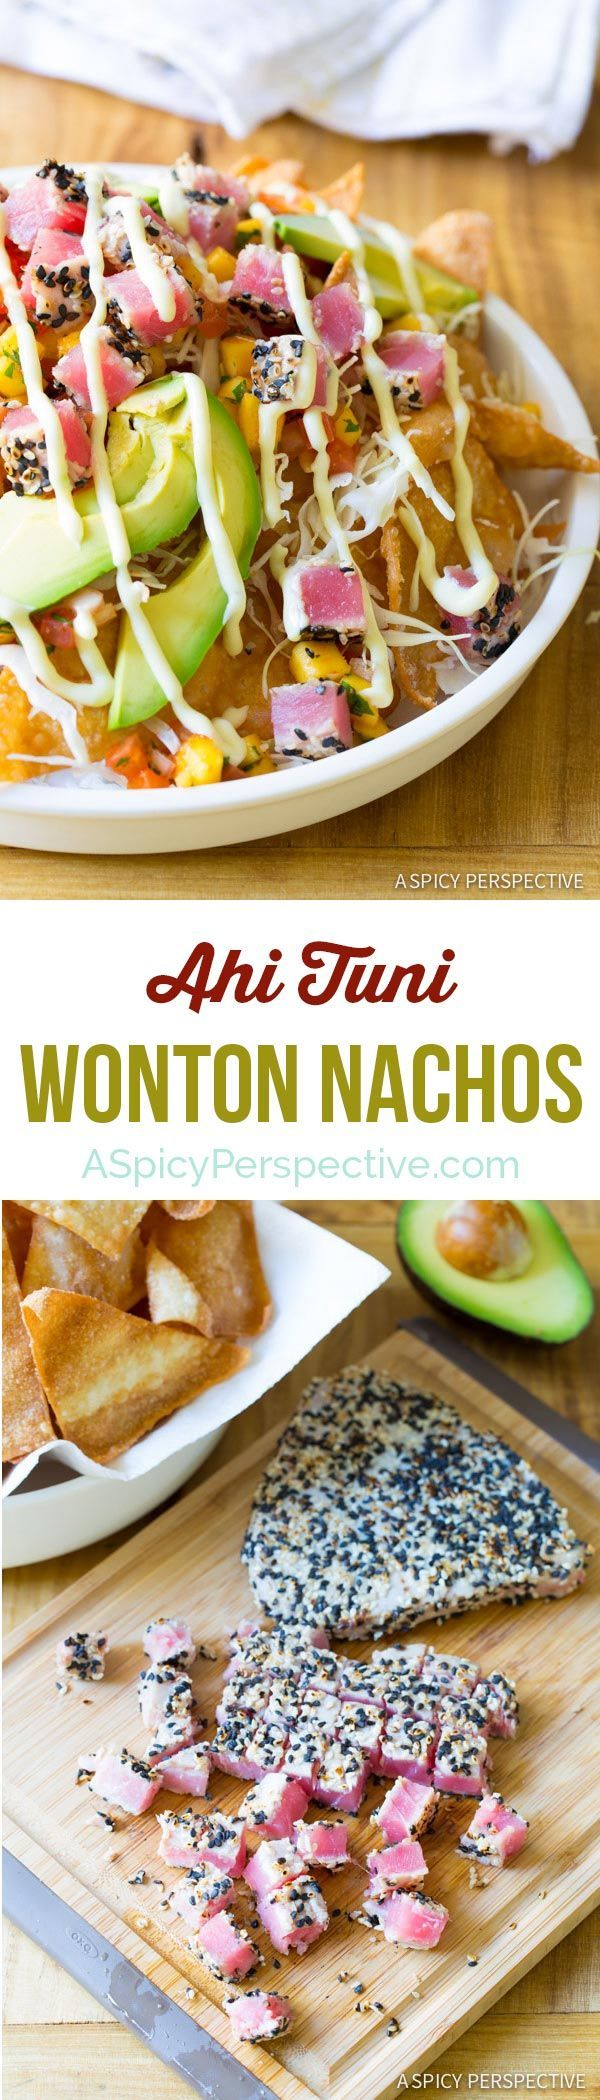 Amazing and Easy to Make Ahi Wonton Nachos with  Mango Salsa and Wasabi Mayo! #nachos via @spicyperspectiv